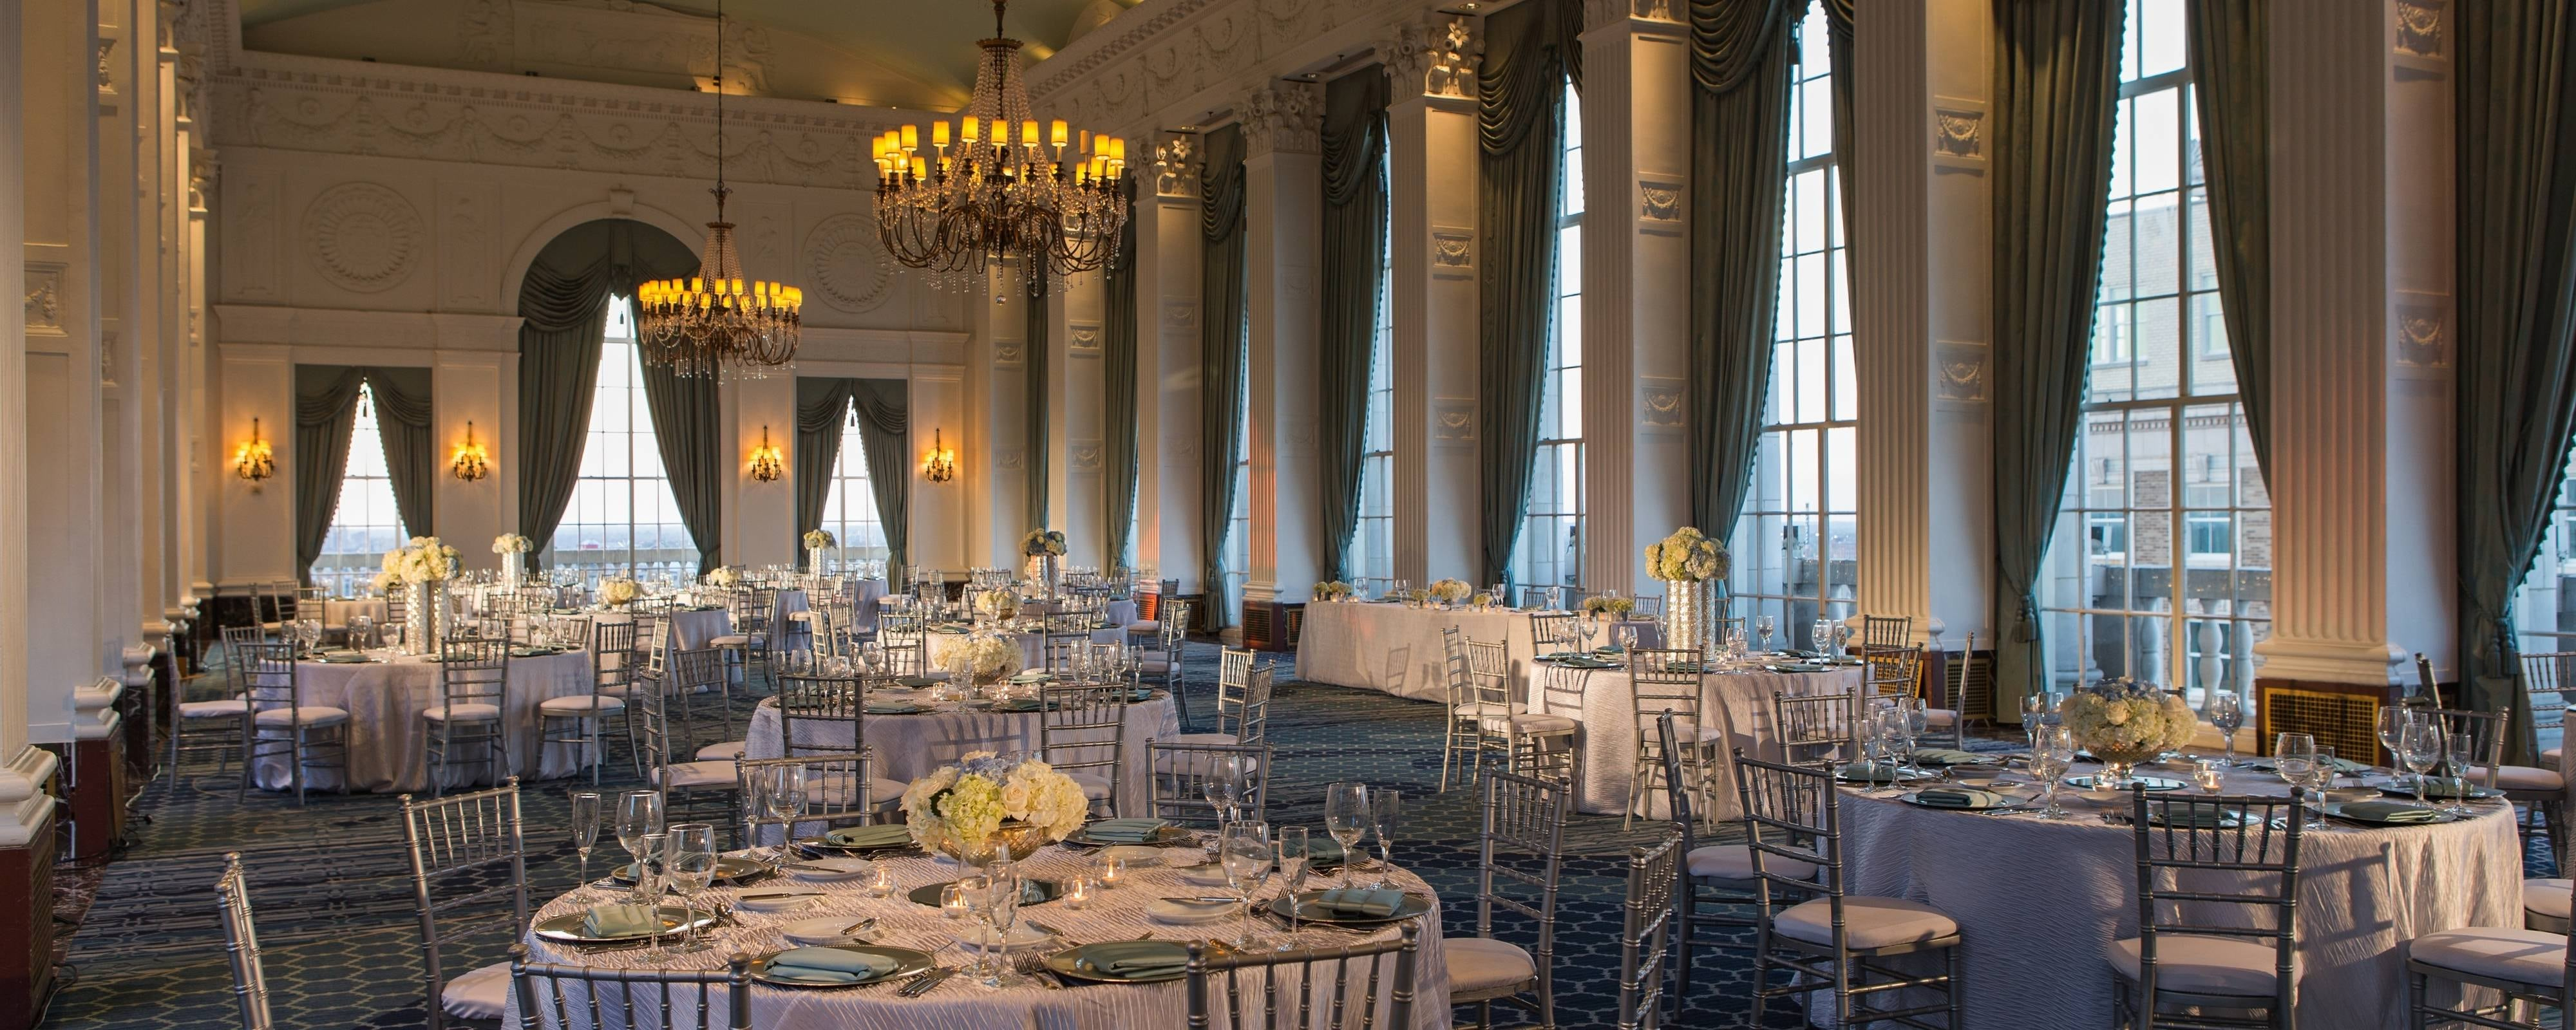 Downtown St Louis Wedding Reception Venues | Marriott St ...